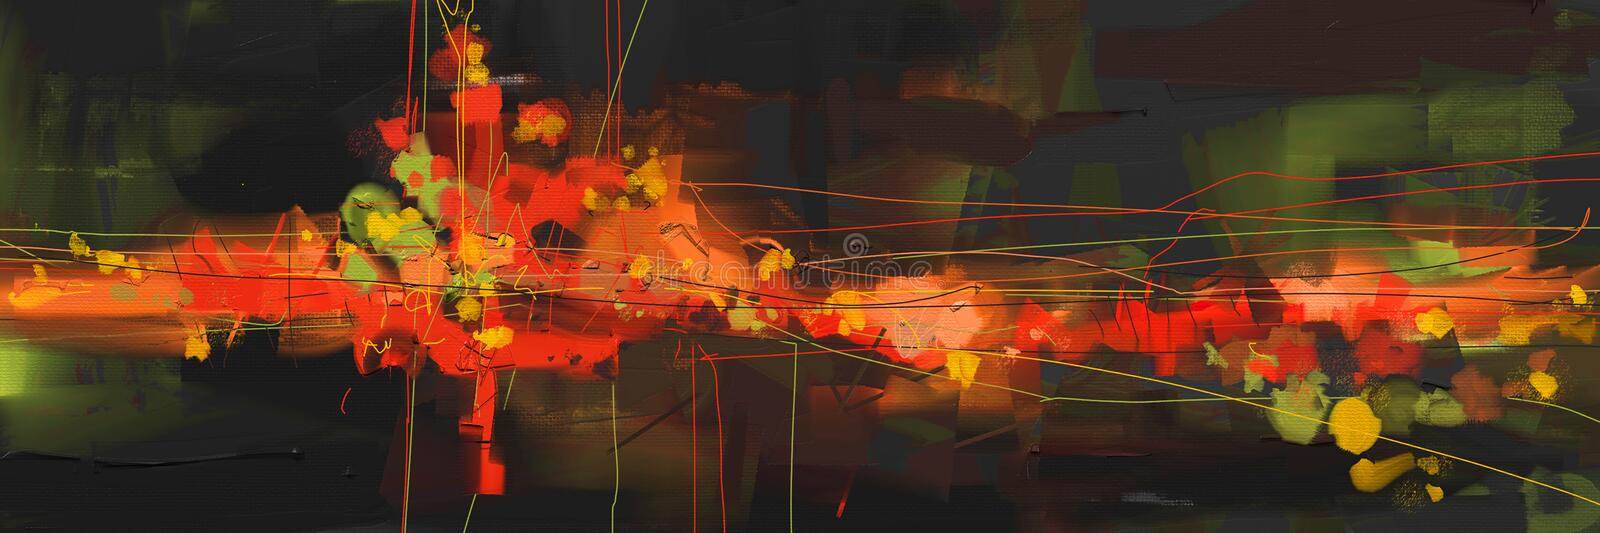 Oil painting abstract style artwork on canvas royalty free illustration